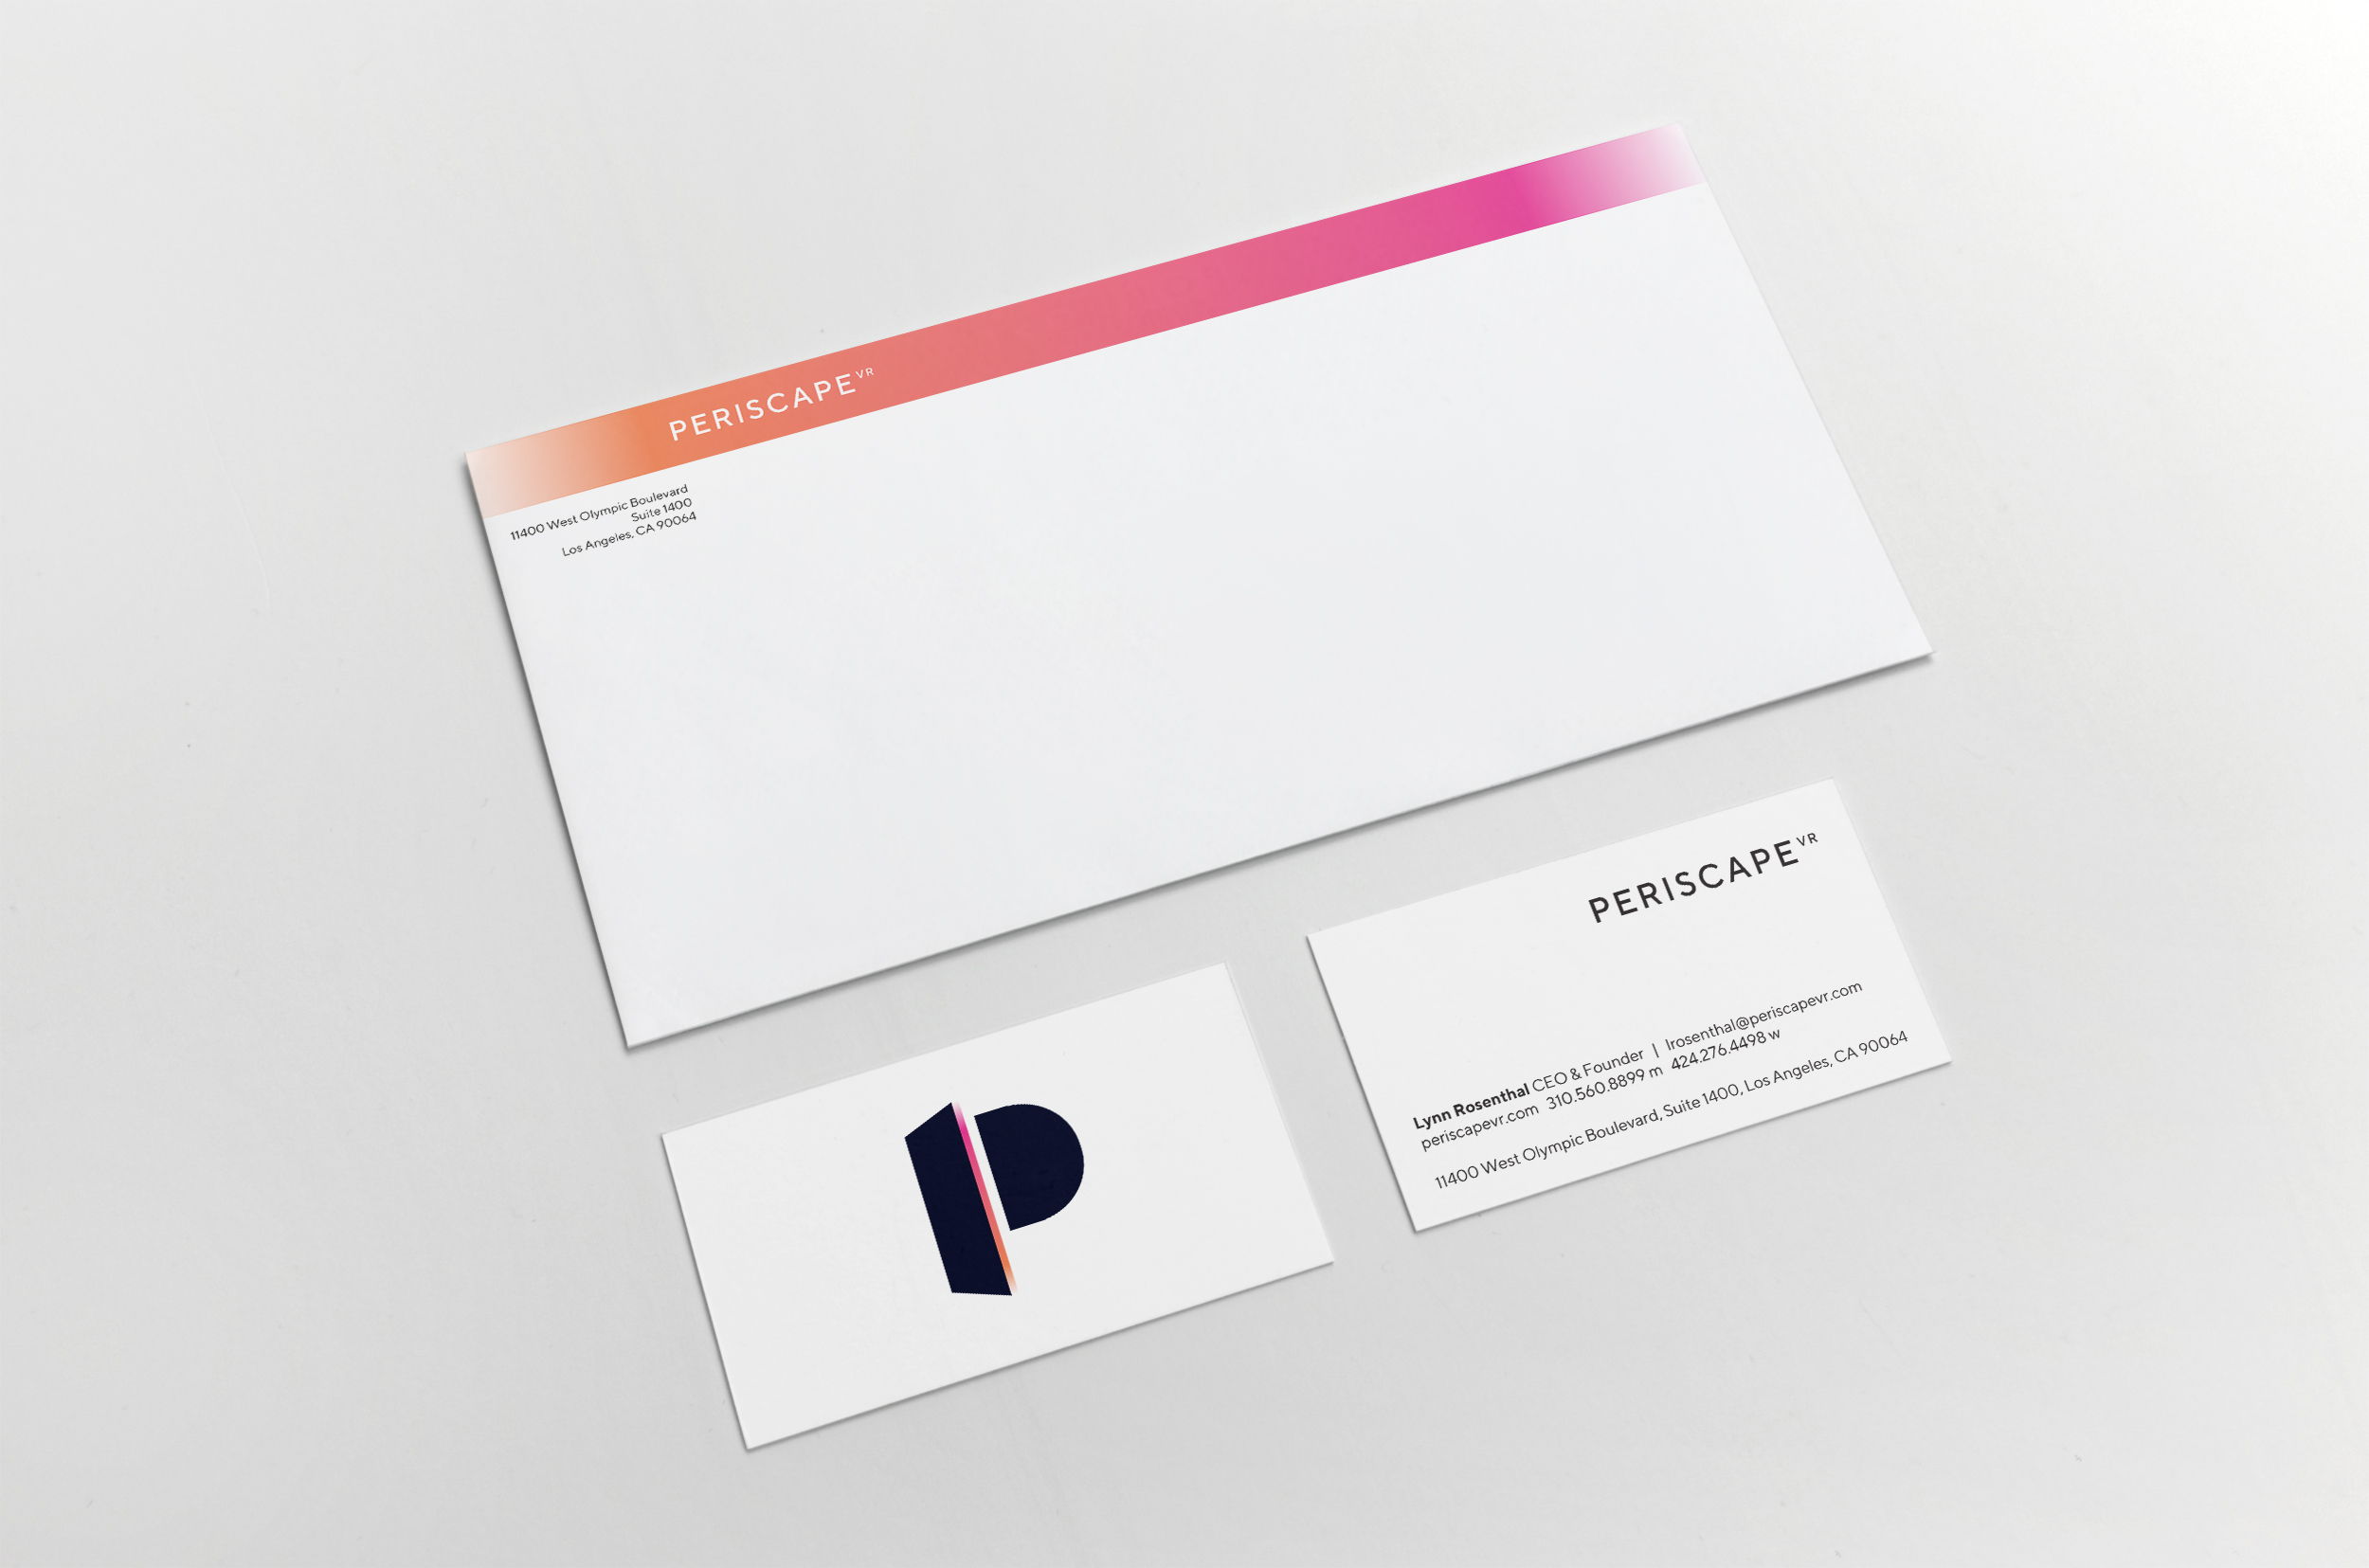 LYNN ROSENTHAL - ENVELOPE AND FRONT AND BACK OF OPTIONAL BUSINESS CARD (DESIGN)